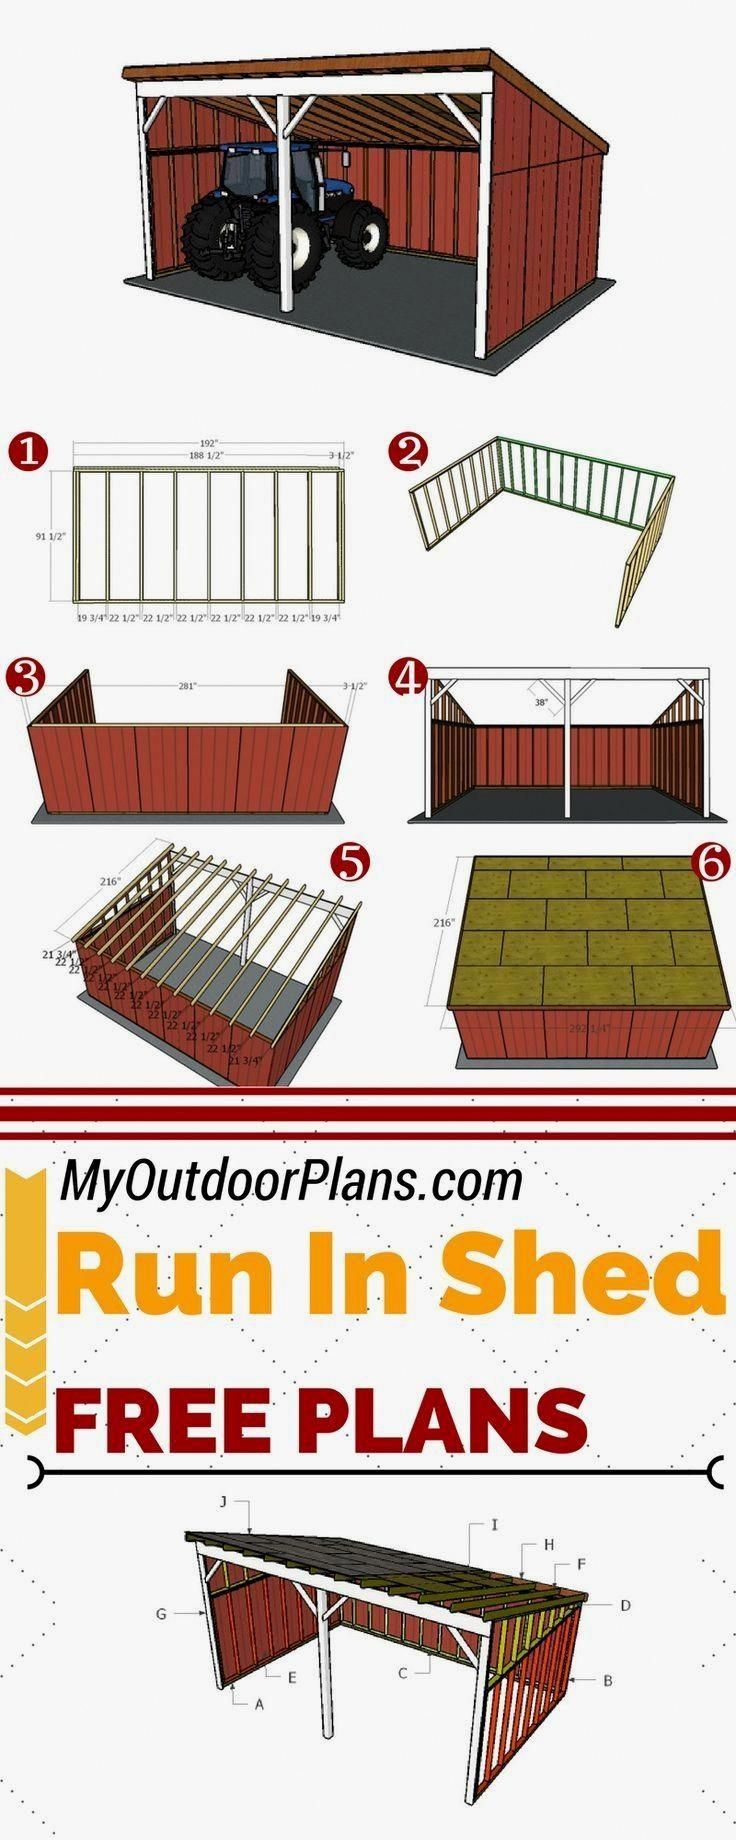 medium resolution of home hardware garden shed plans and pics of building plans for 8x12 garden shed